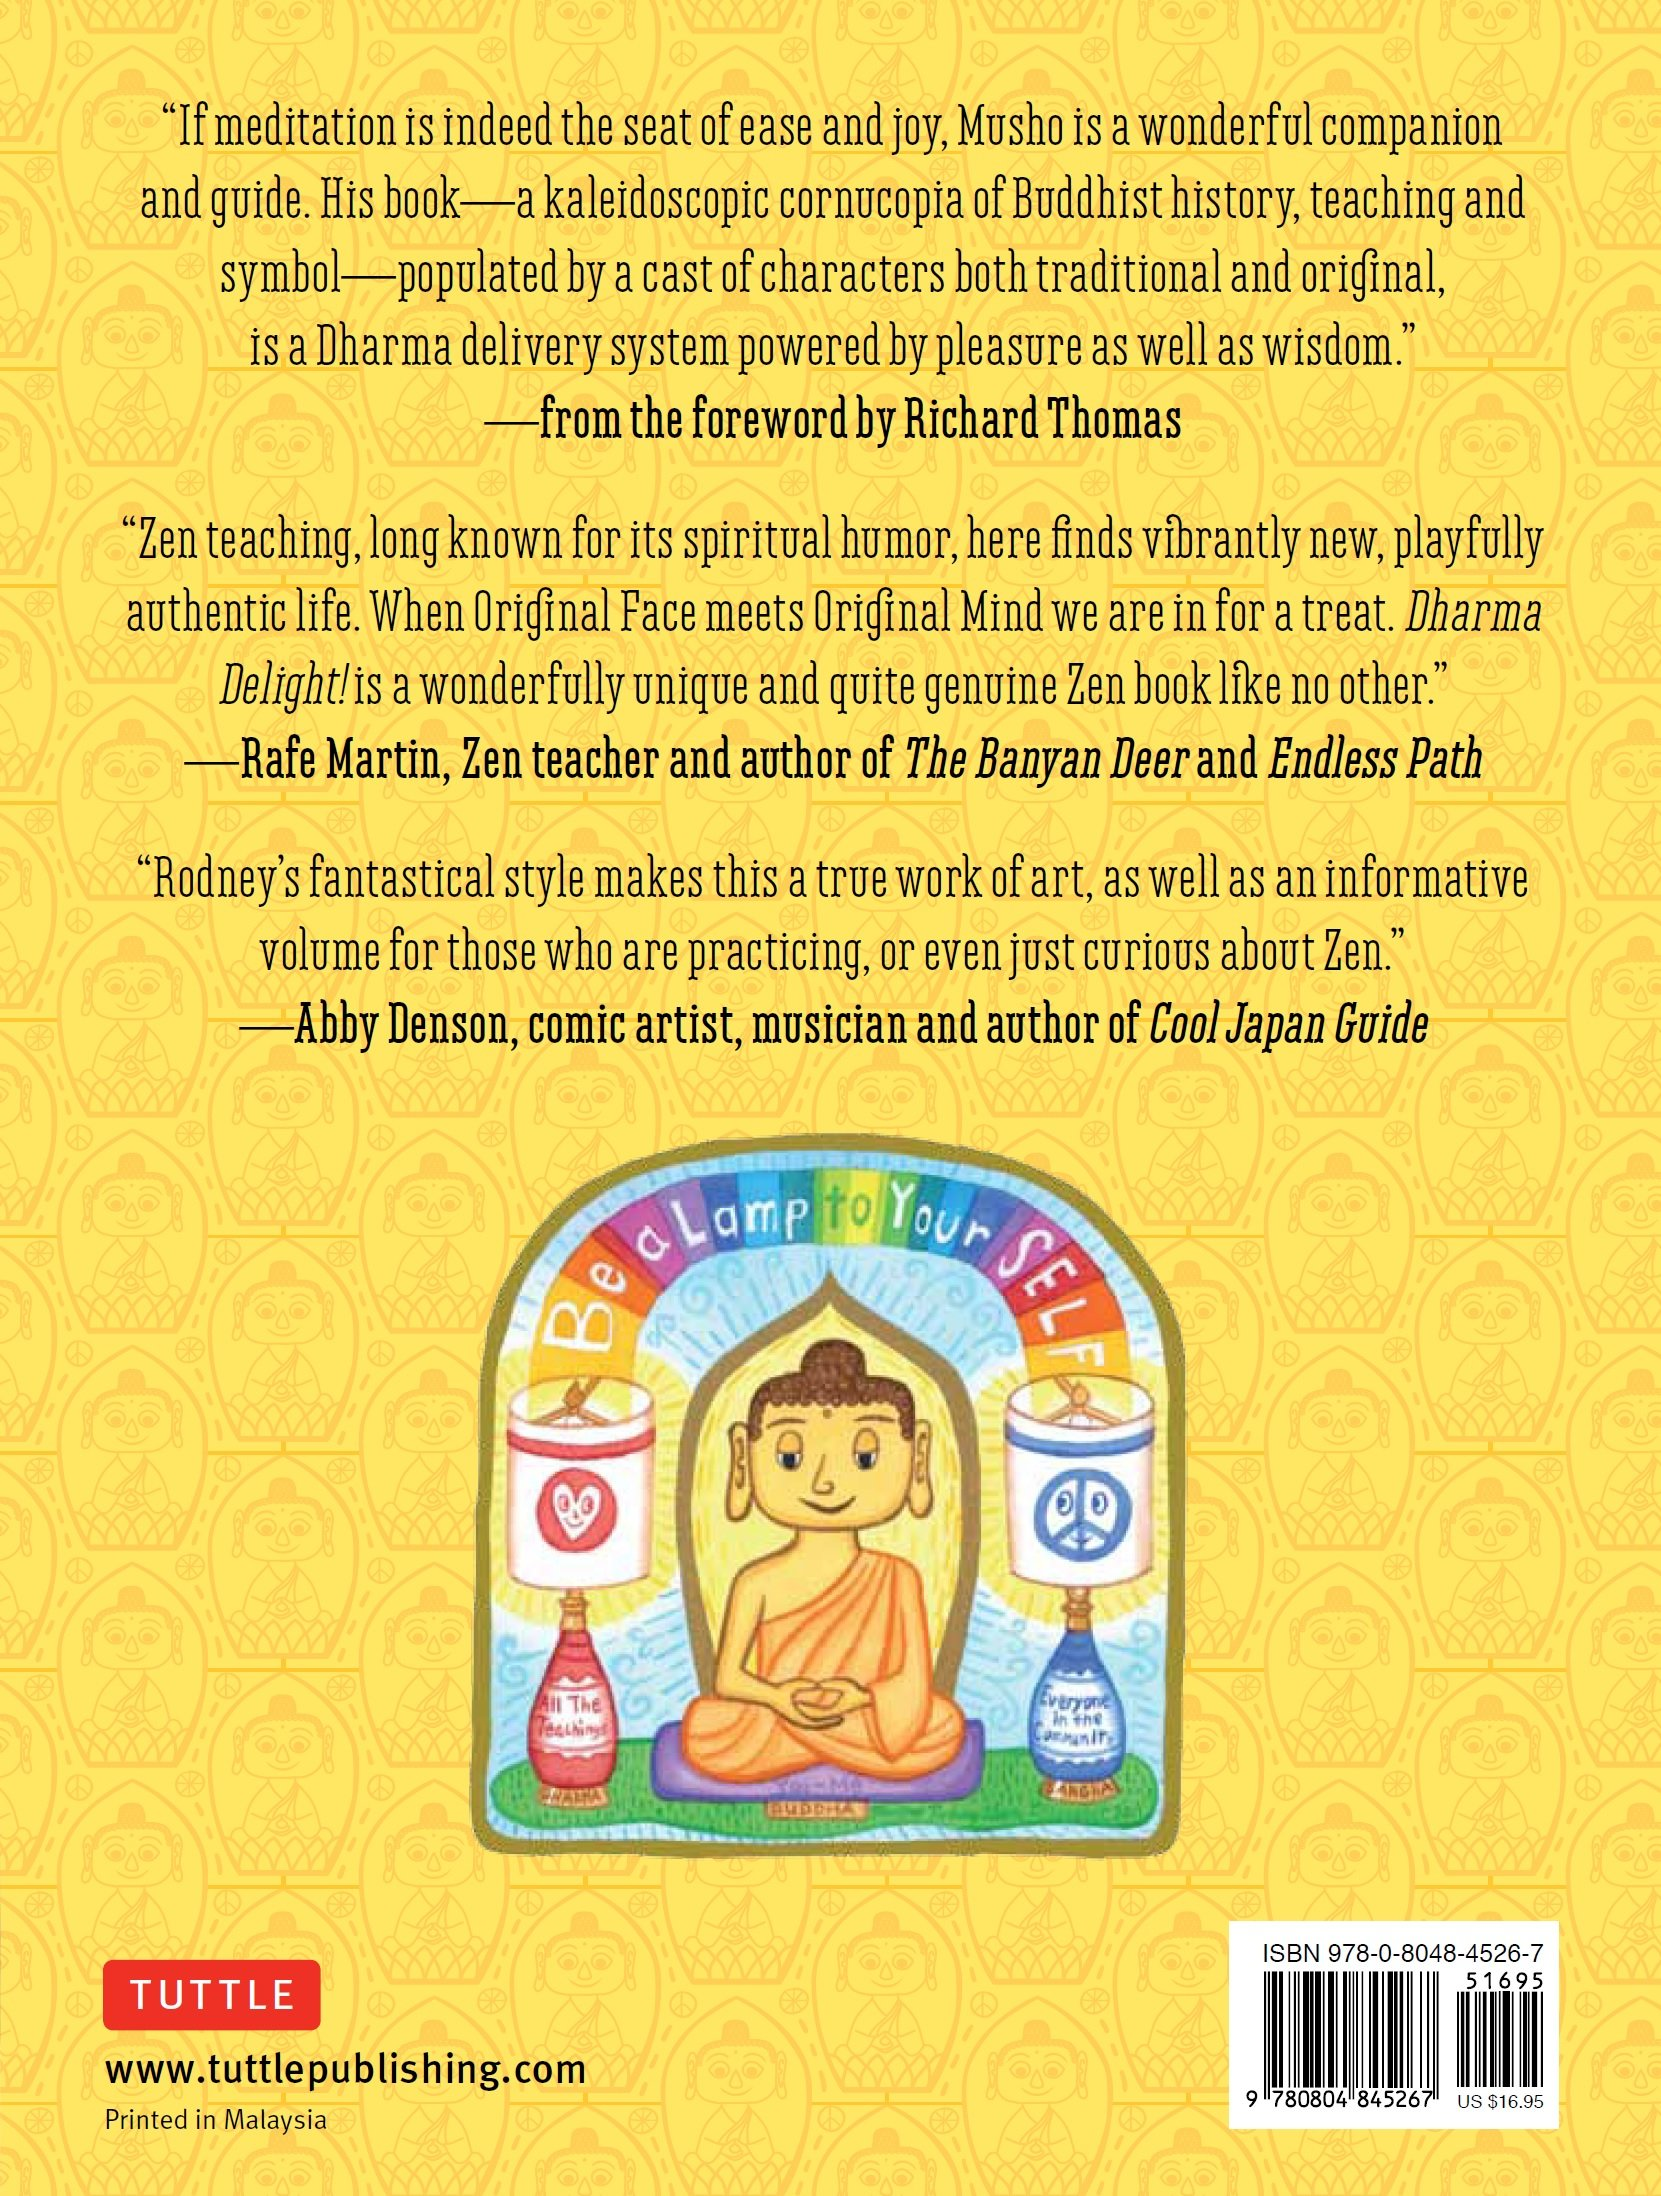 Amazon: Dharma Delight: A Visionary Post Popic Guide To Buddhism  And Zen (9780804845267): Rodney Alan Greenblat, Richard Thomas: Books